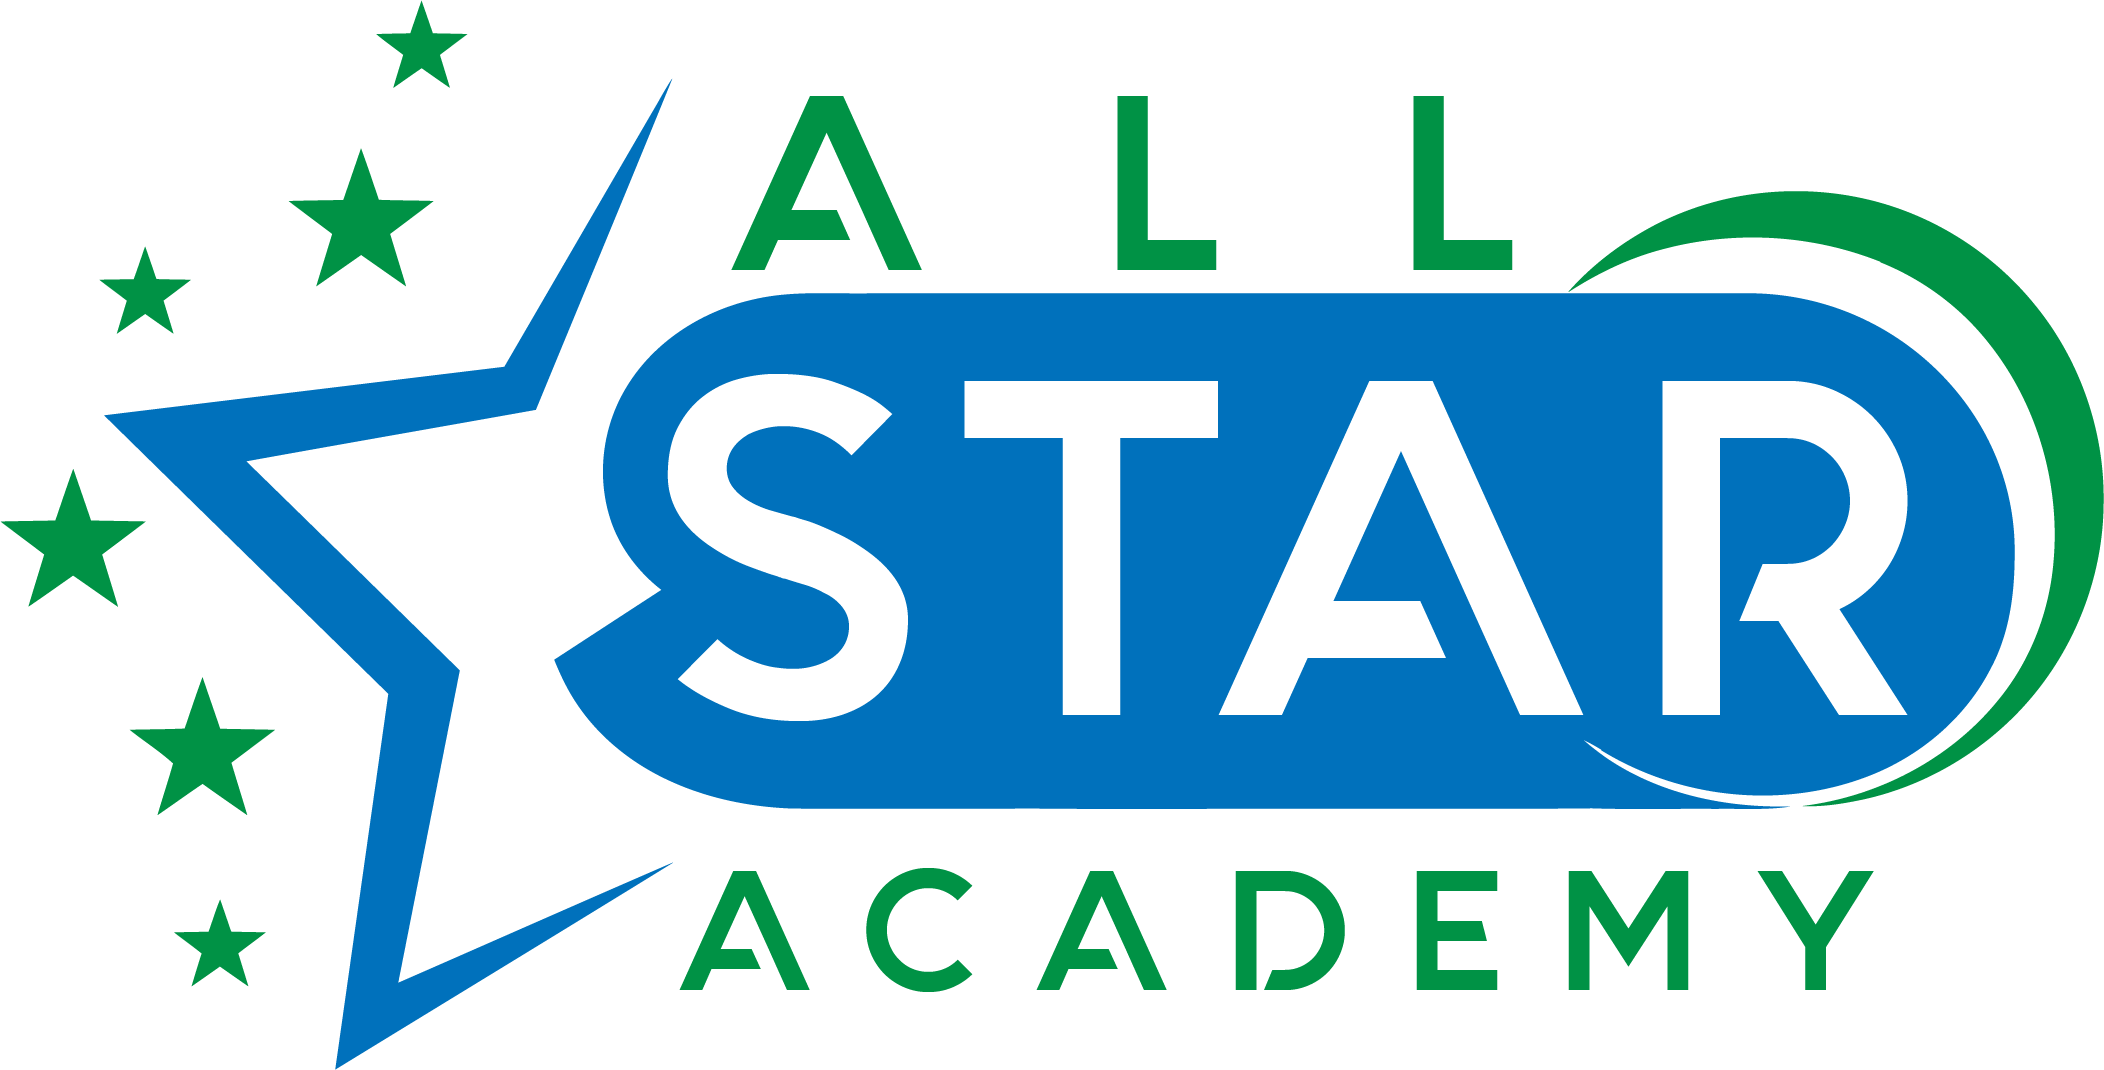 All Star Academy